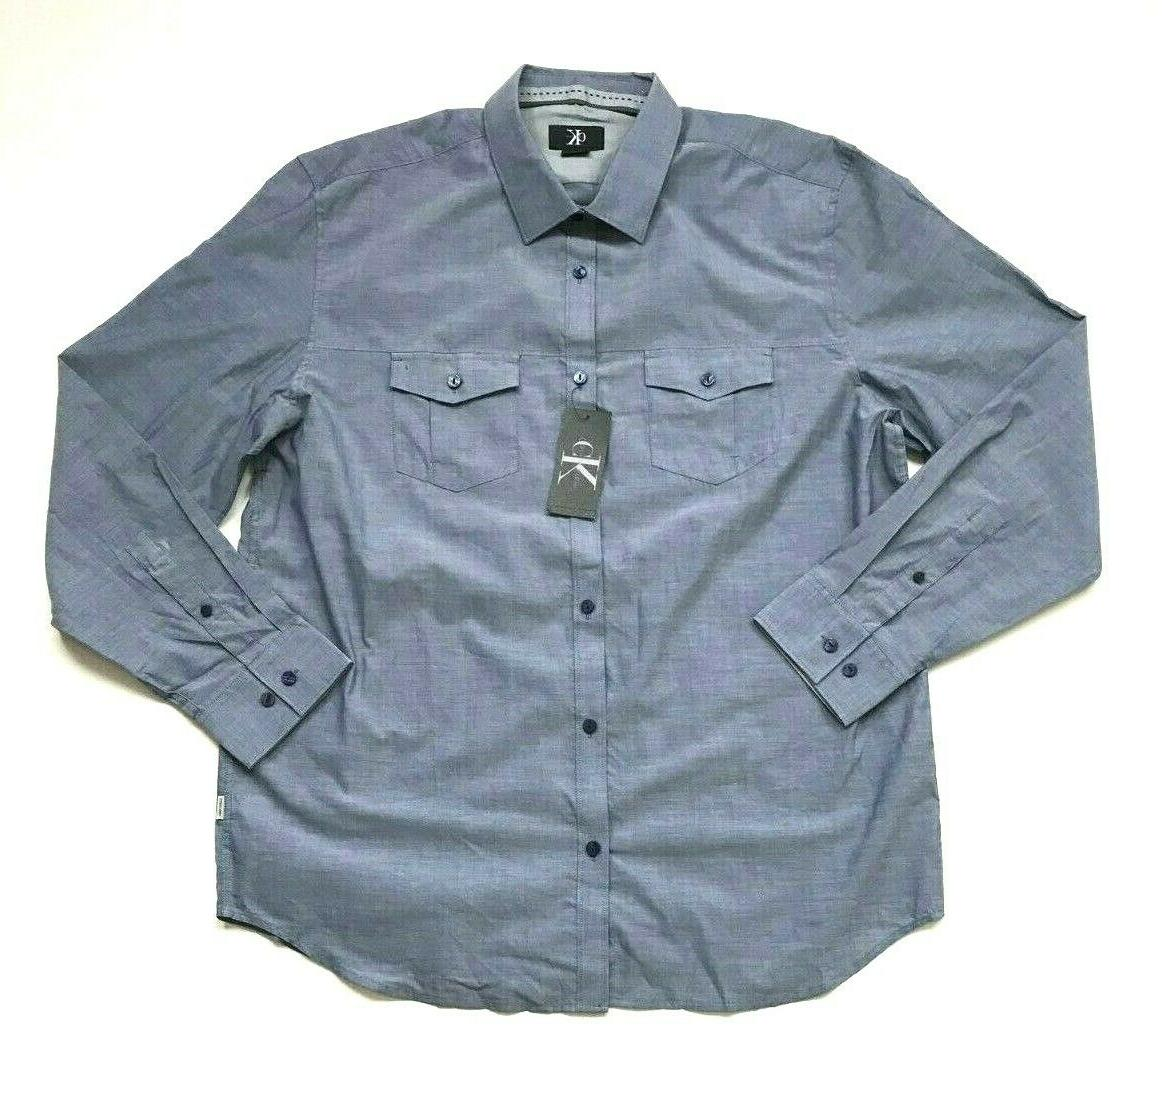 NWT Calvin Klein Men's Long Sleeve Button Down Cotton Shirt